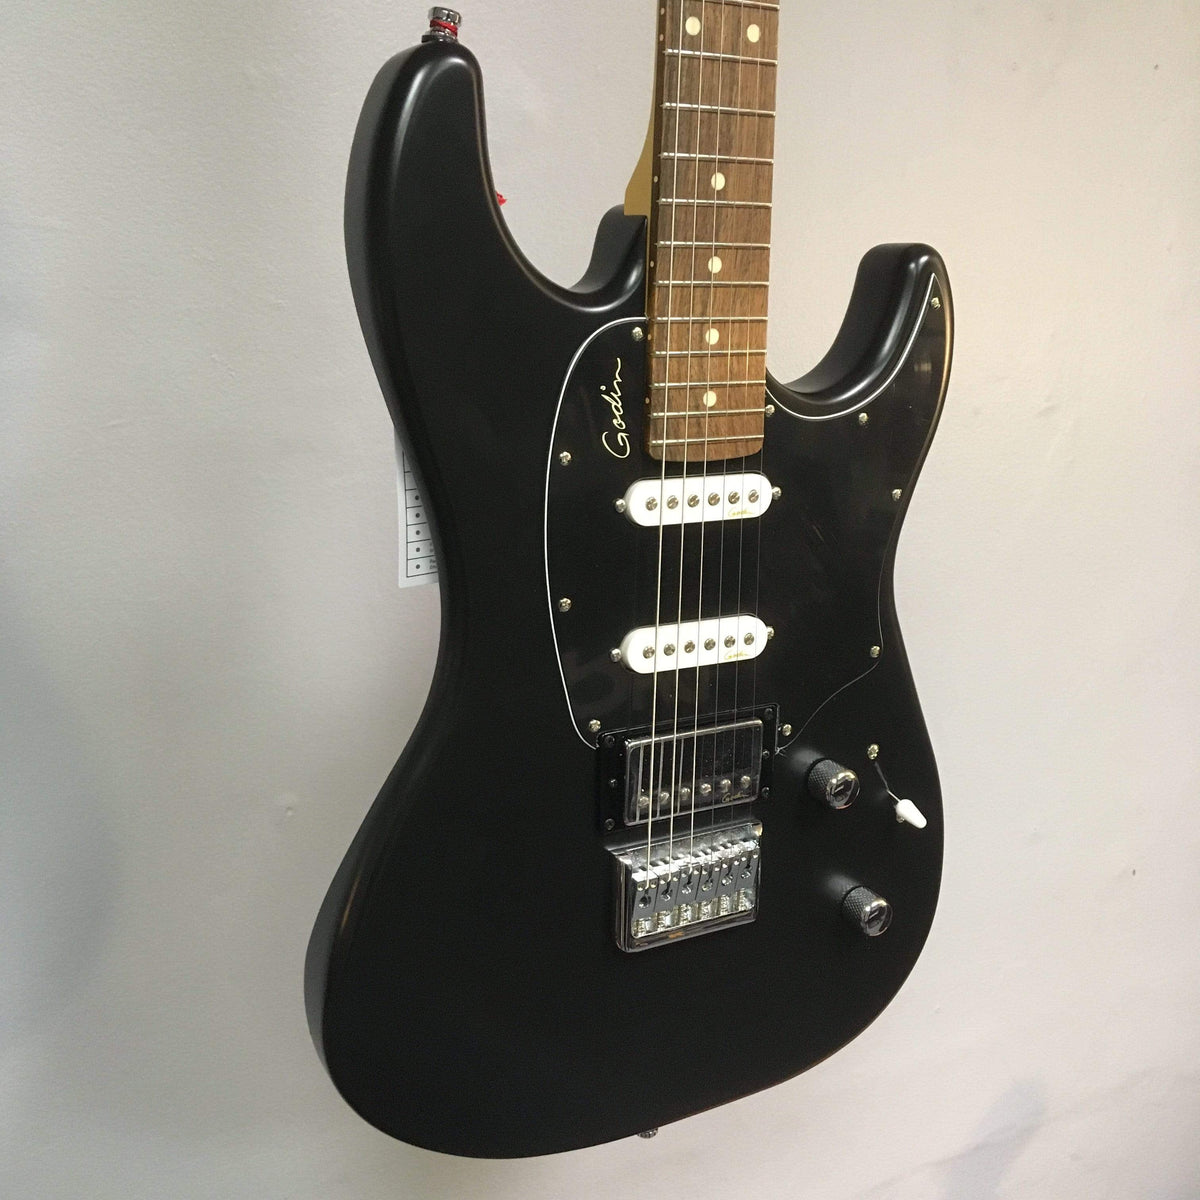 Godin Session HT Matte Black RN Factory 2nd